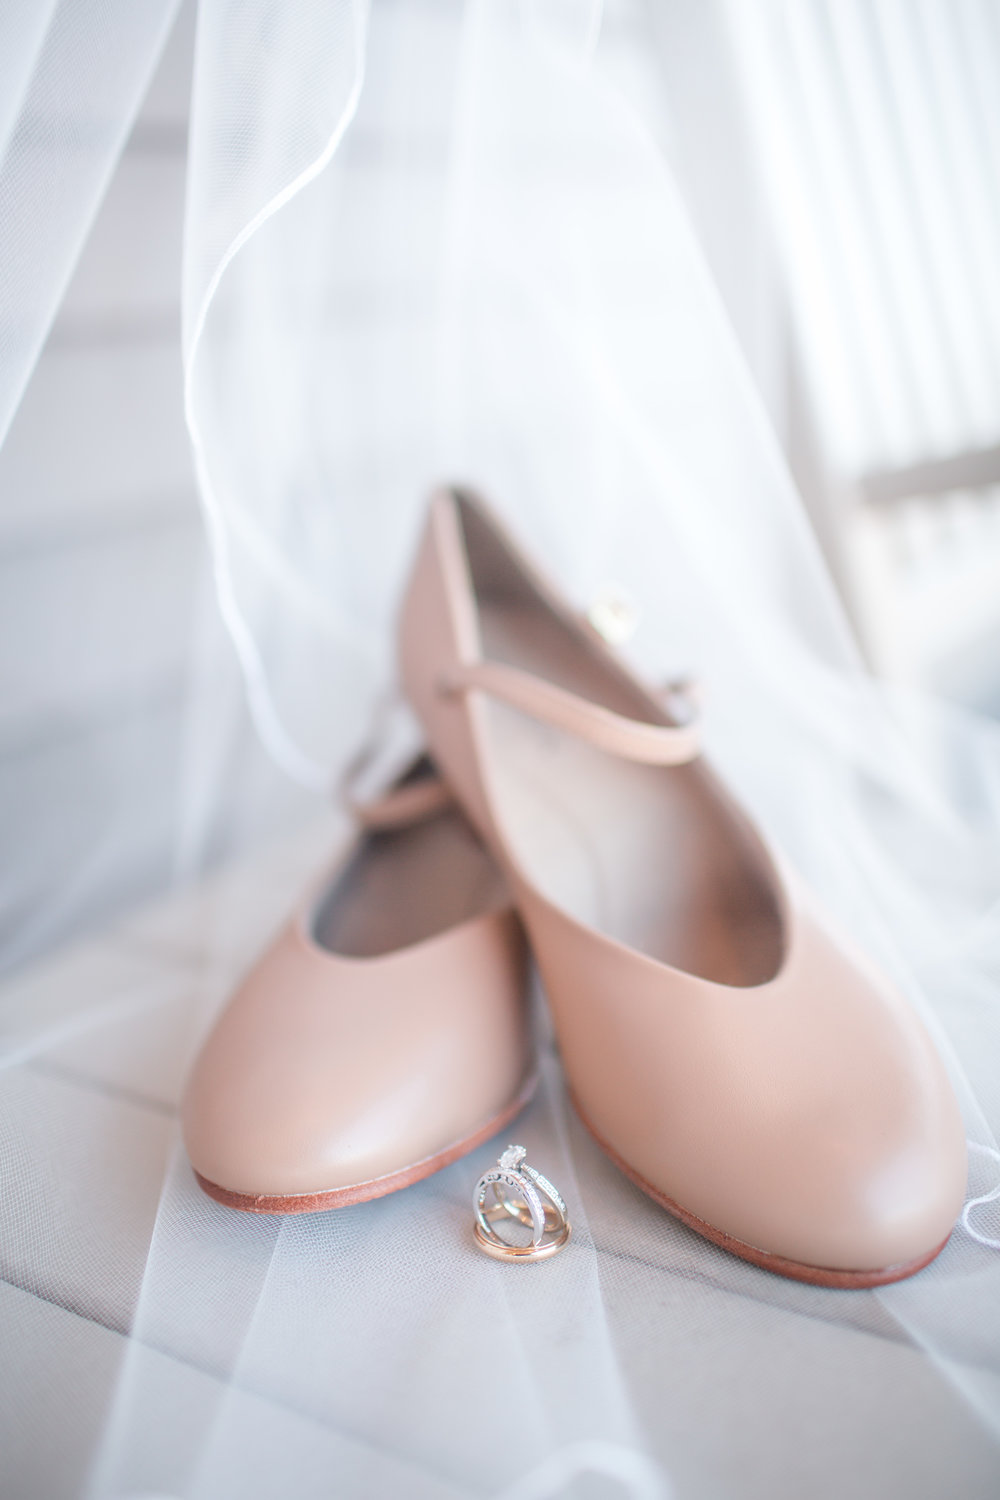 dance shoes and wedding rings bride details iowa des moines